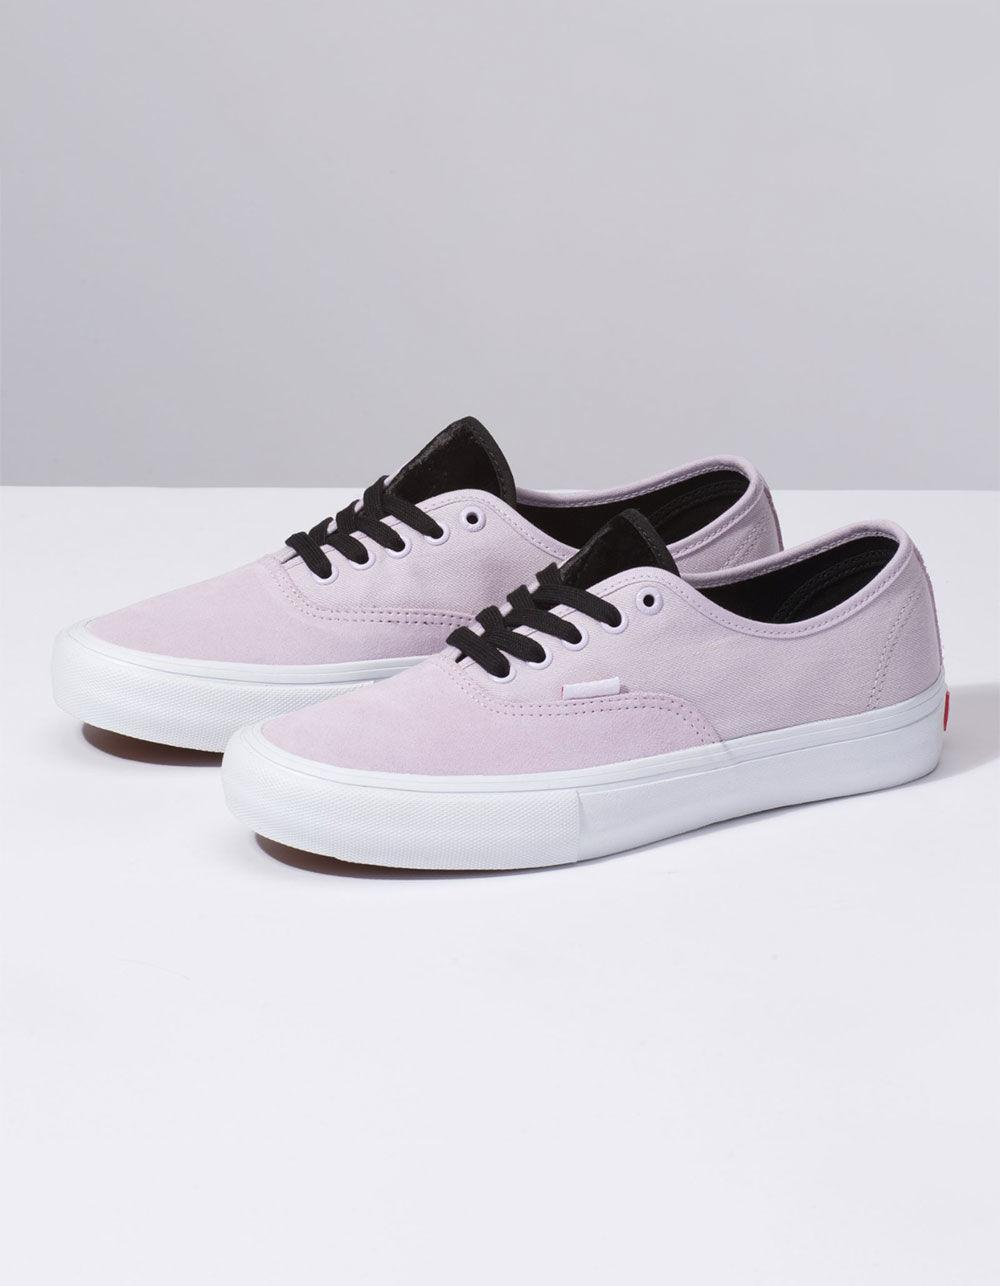 f9601d627aa Lyst - Vans Velvet Authentic Pro Lavendar Shoes